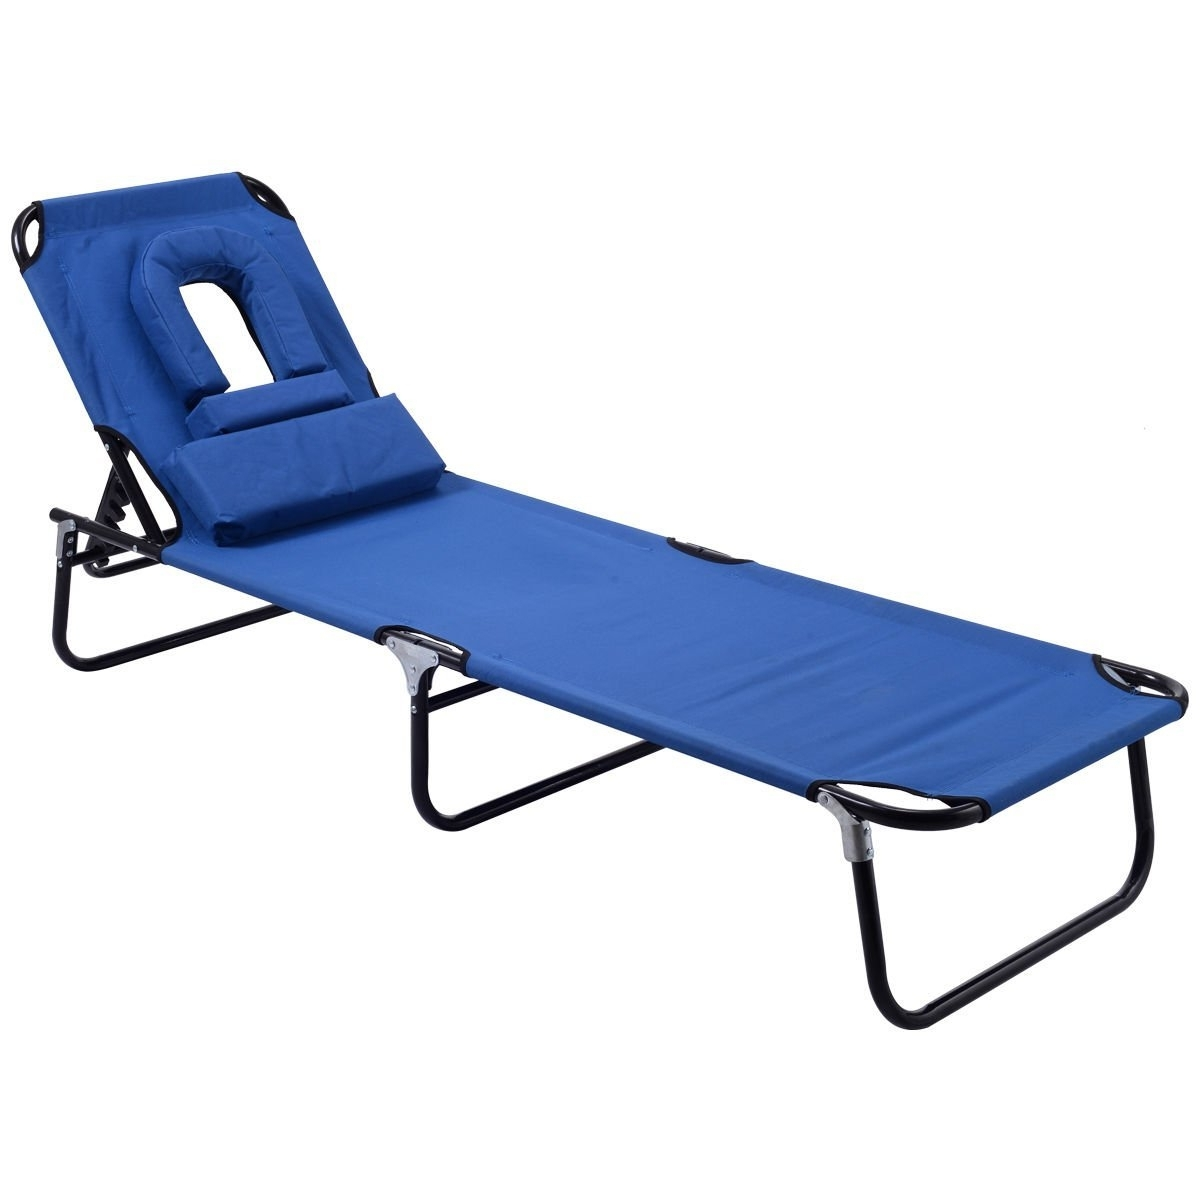 2017 Folding Chaise Lounge Chairs Throughout Amazon: Goplus Folding Chaise Lounge Chair Bed Outdoor Patio (View 13 of 15)